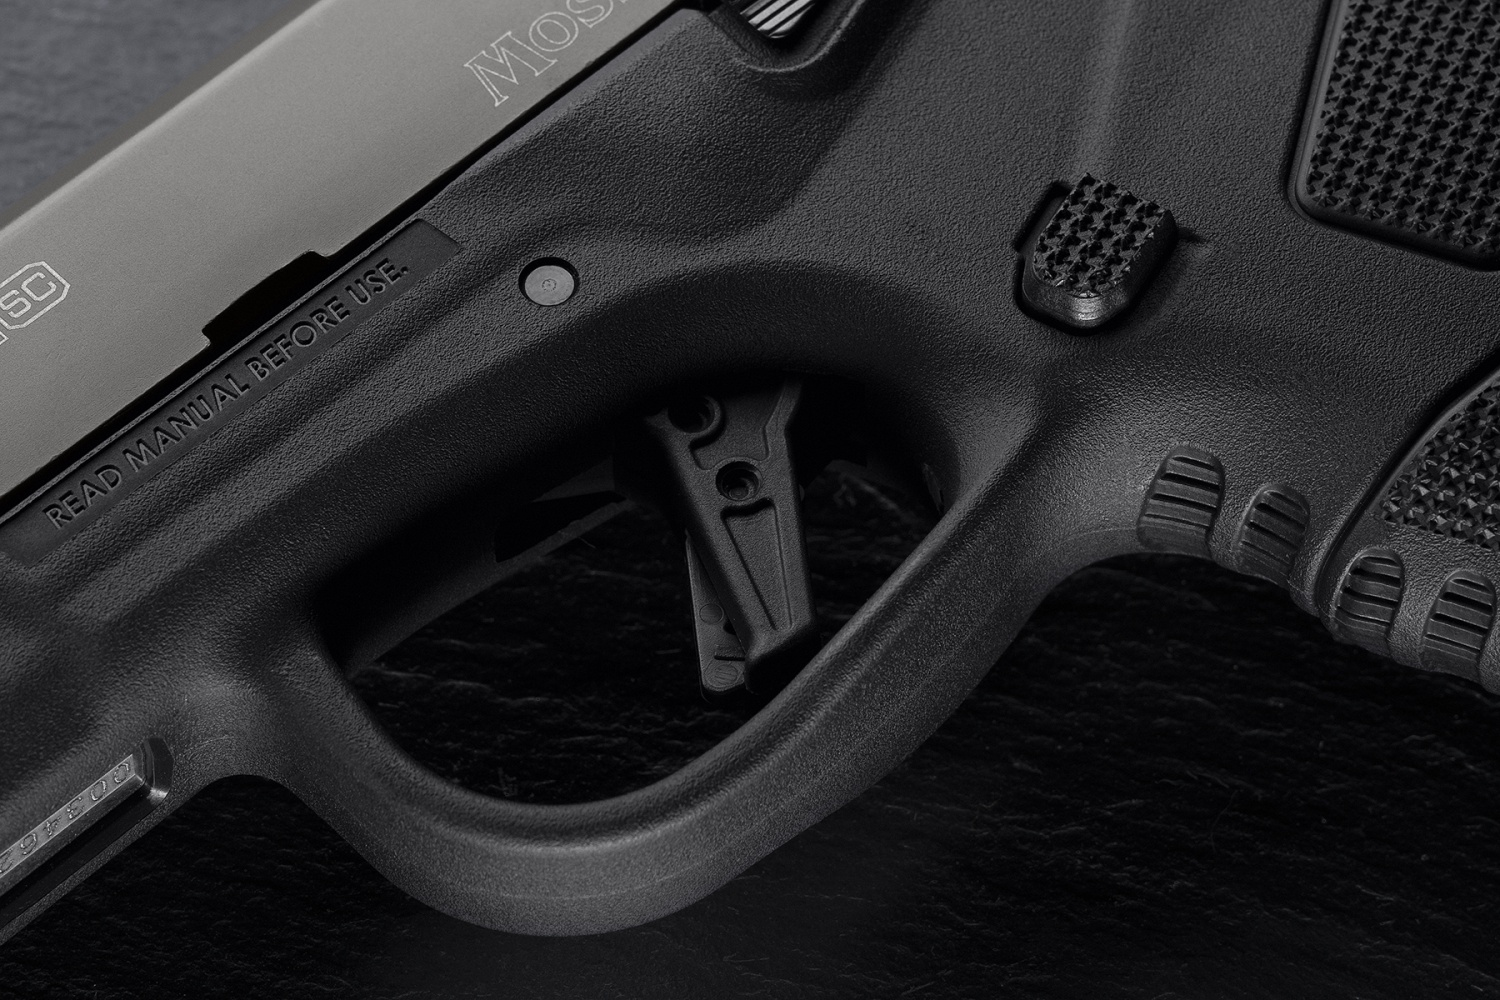 Oversized trigger guard is nice. It would be awesome to have a little higher cut at the back.